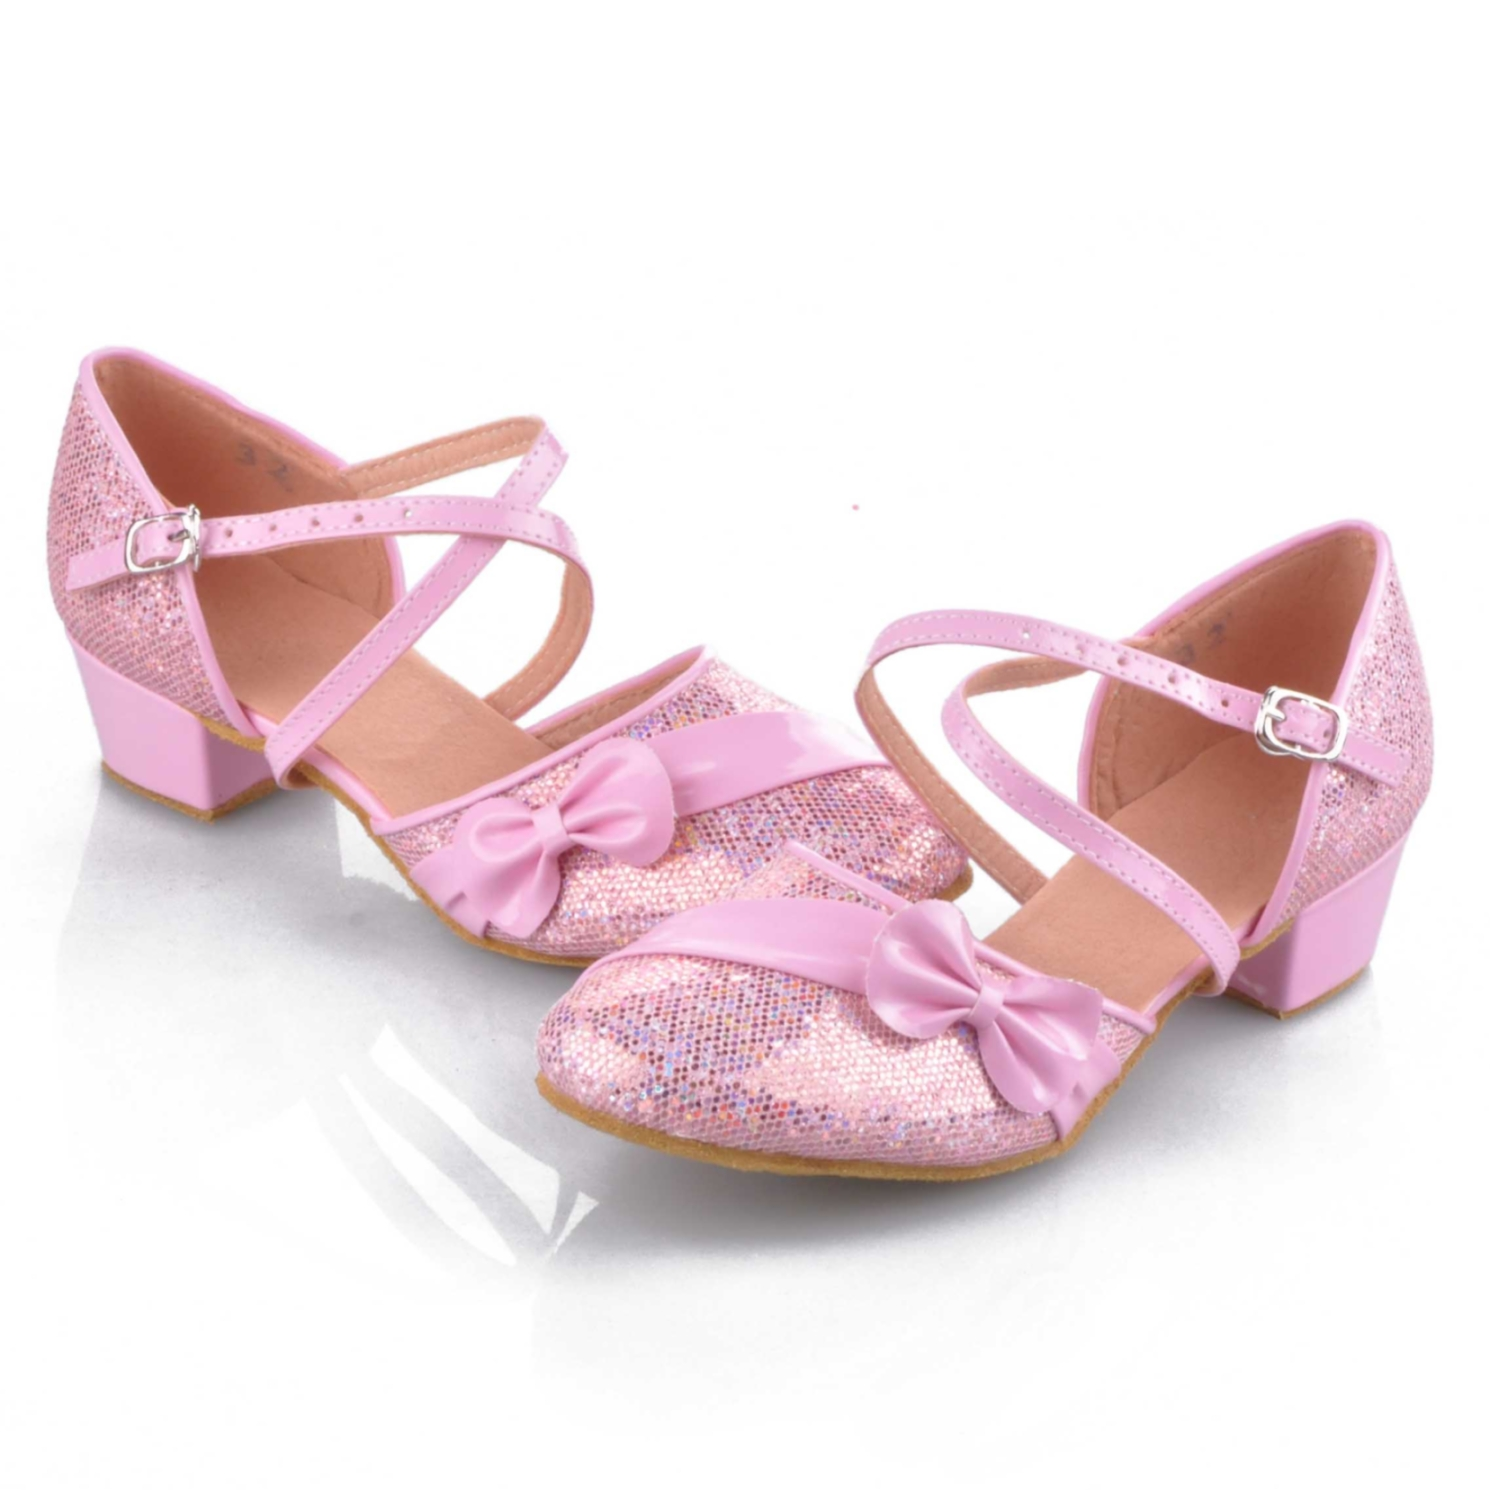 Child Latin dance shoes female child Latin shoes child dance shoes nagle Latin dance shoes Latin shoes dance shoes soft outsole